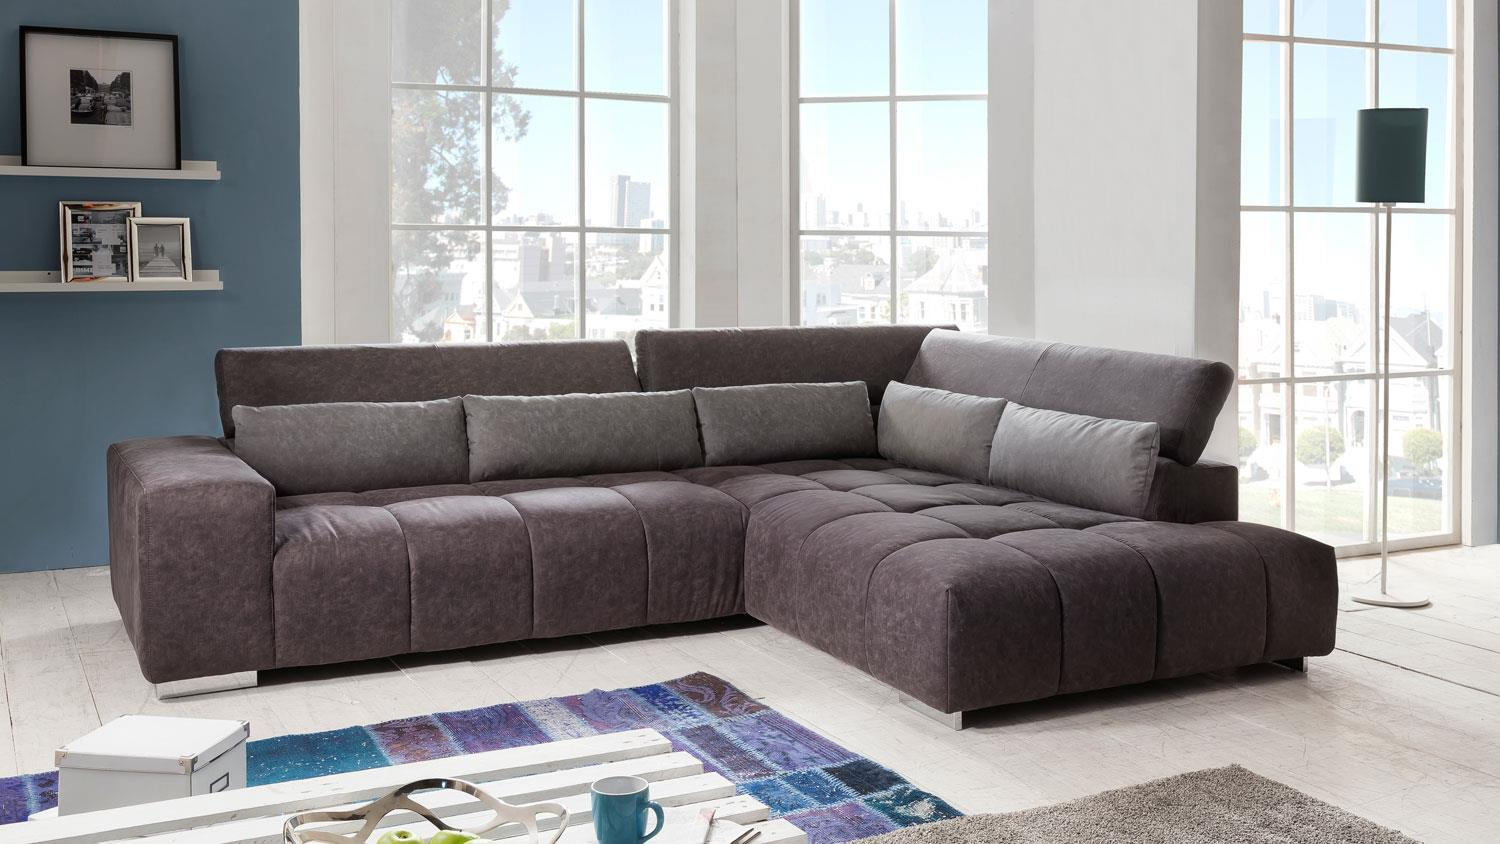 ecksofa aksis wohnlandschaft sofa polstersofa in braun 308x225 cm. Black Bedroom Furniture Sets. Home Design Ideas